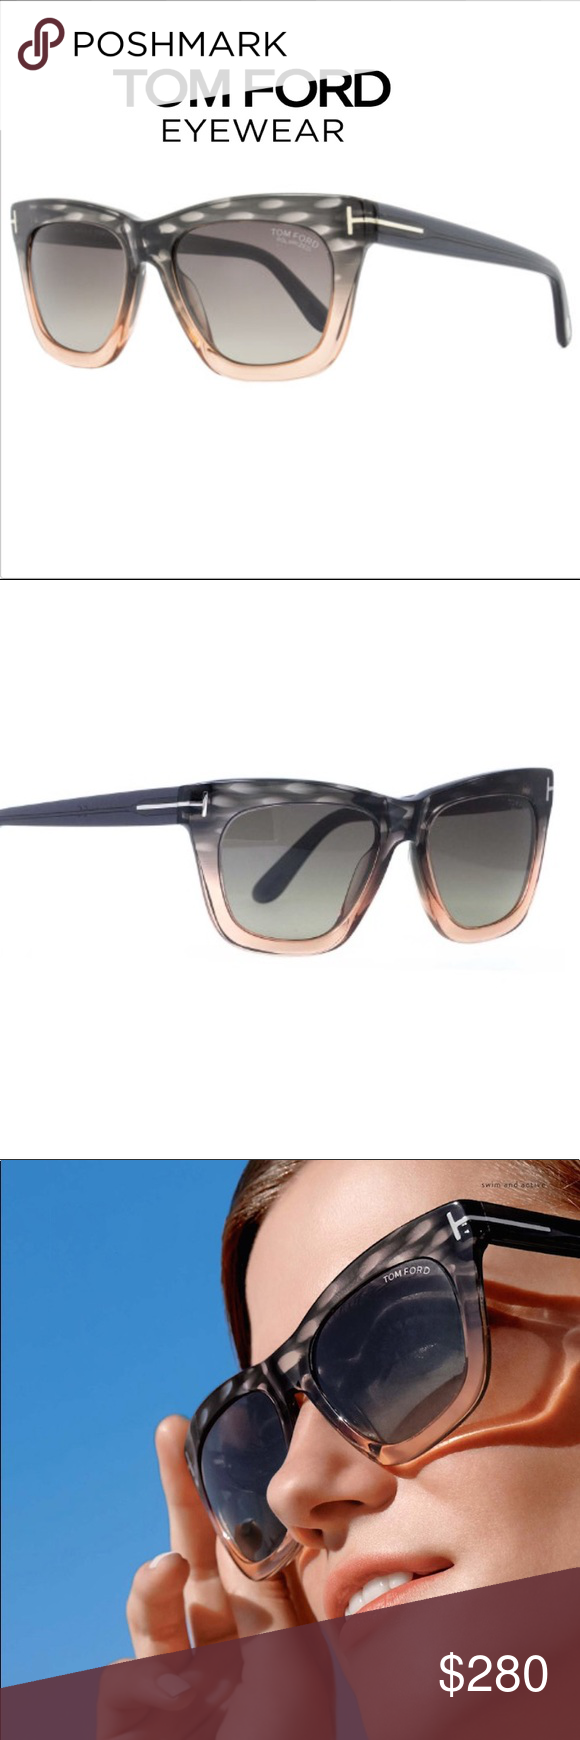 72c524b7bbae Authentic Tom Ford CELINA Sunglasses •100% Authentic •Brand New •Sunglasses Tom  Ford